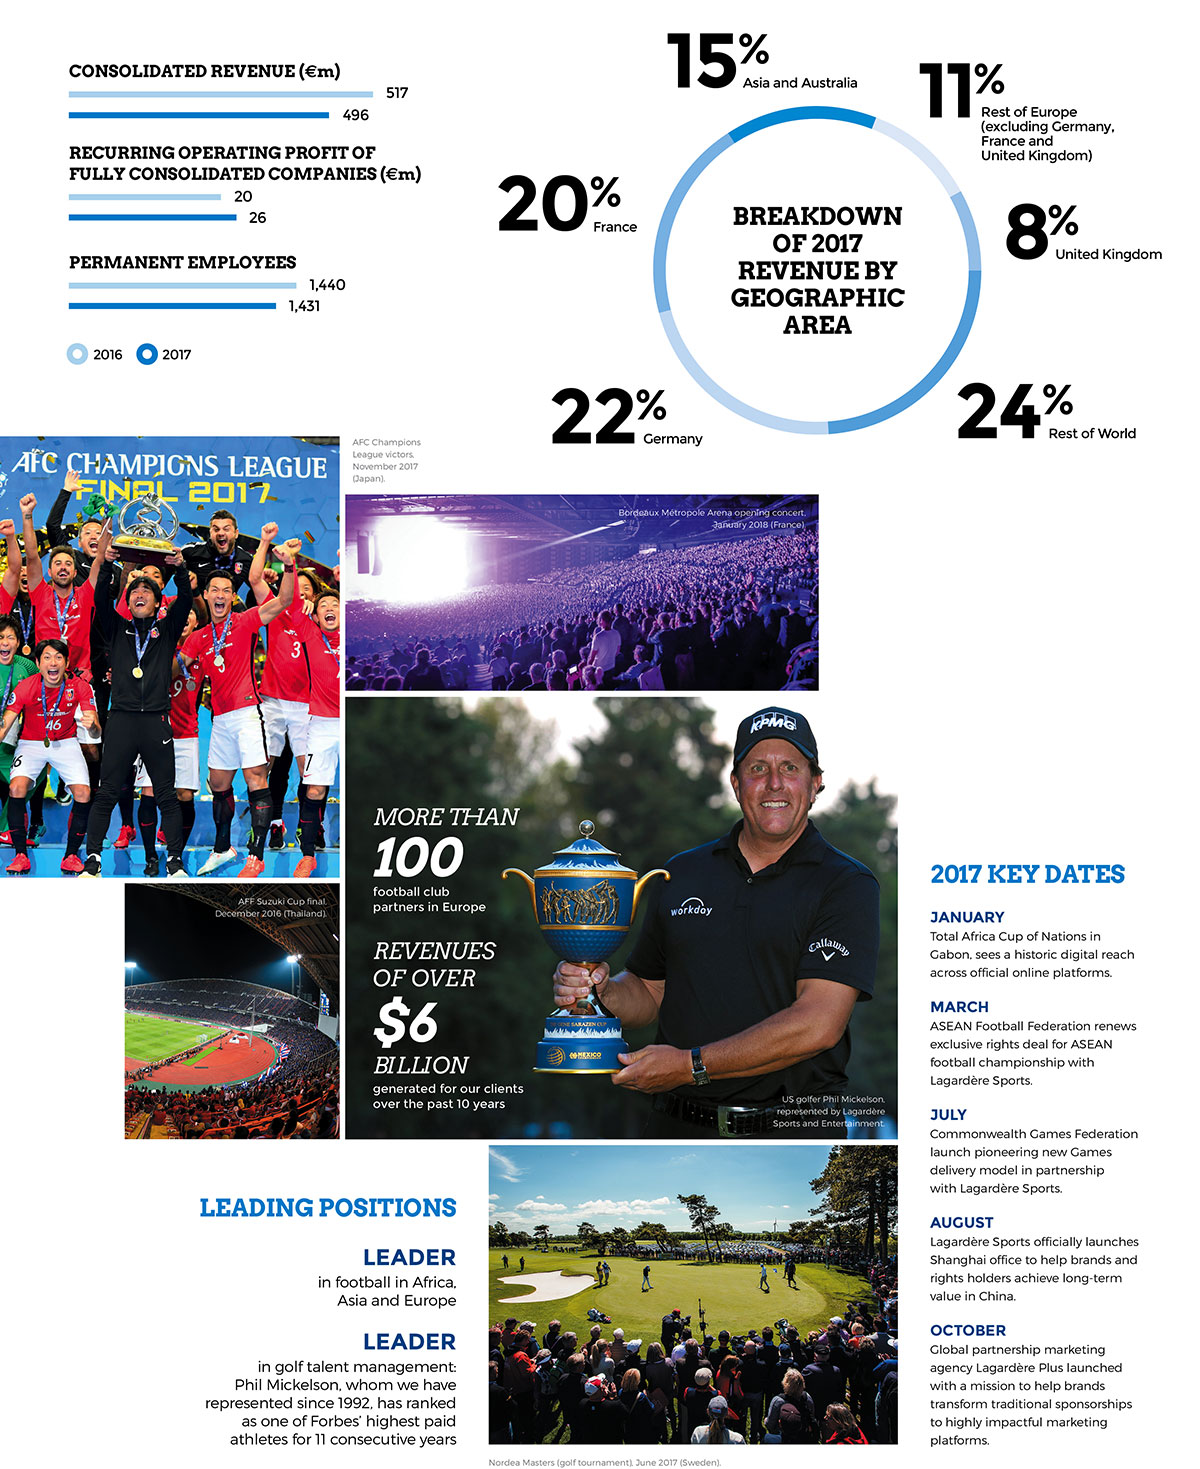 Lagardère Sports and Entertainment: 2017 key figures